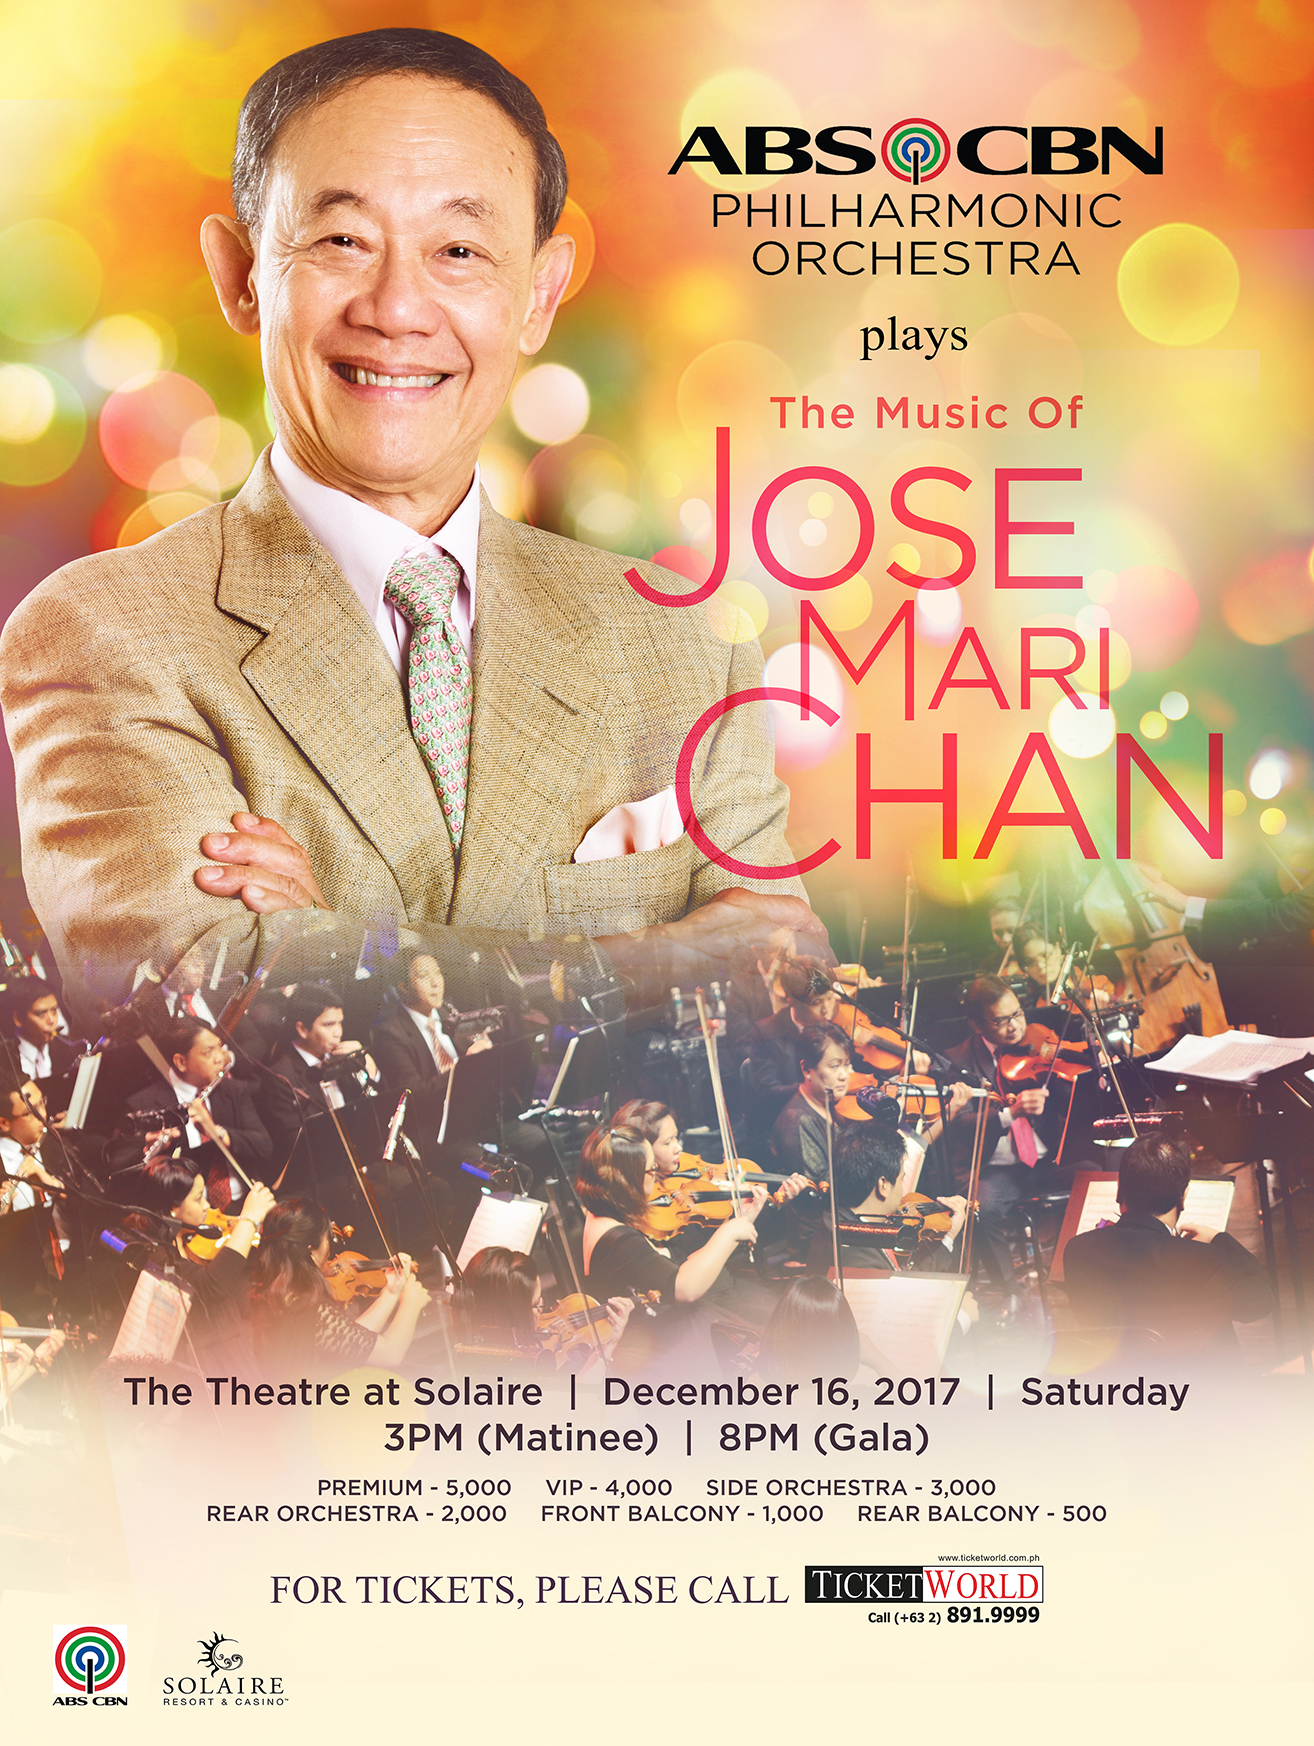 ABS CBN Philharmonic Orchestra marks the holiday season with the music of Jose Mari Chan  1